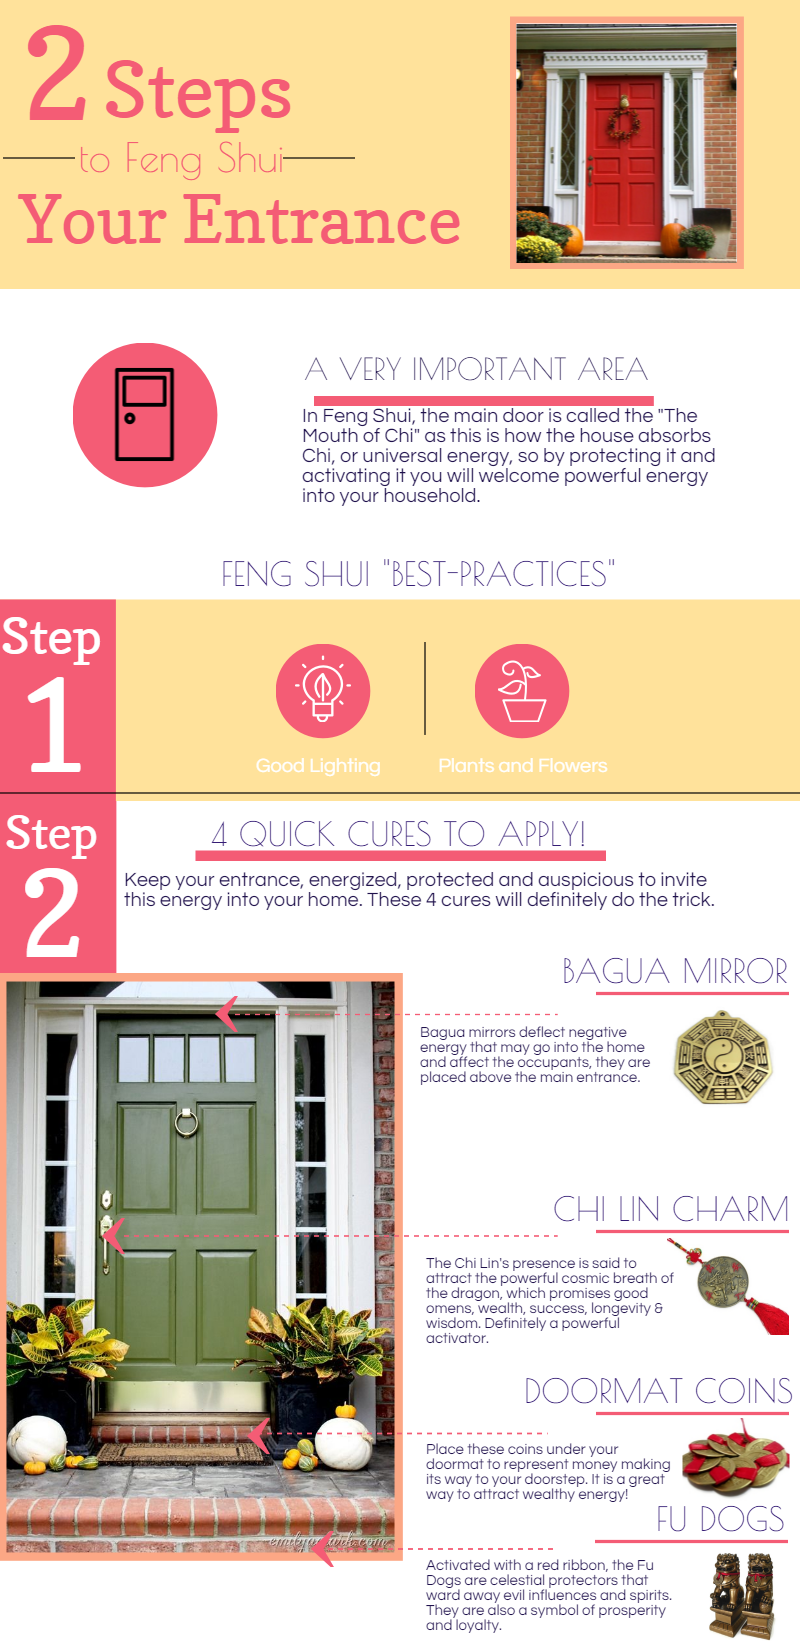 Fun Feng Shui Infographic To Activate Your Entrance In 2 Easy Steps And 5 Minutes